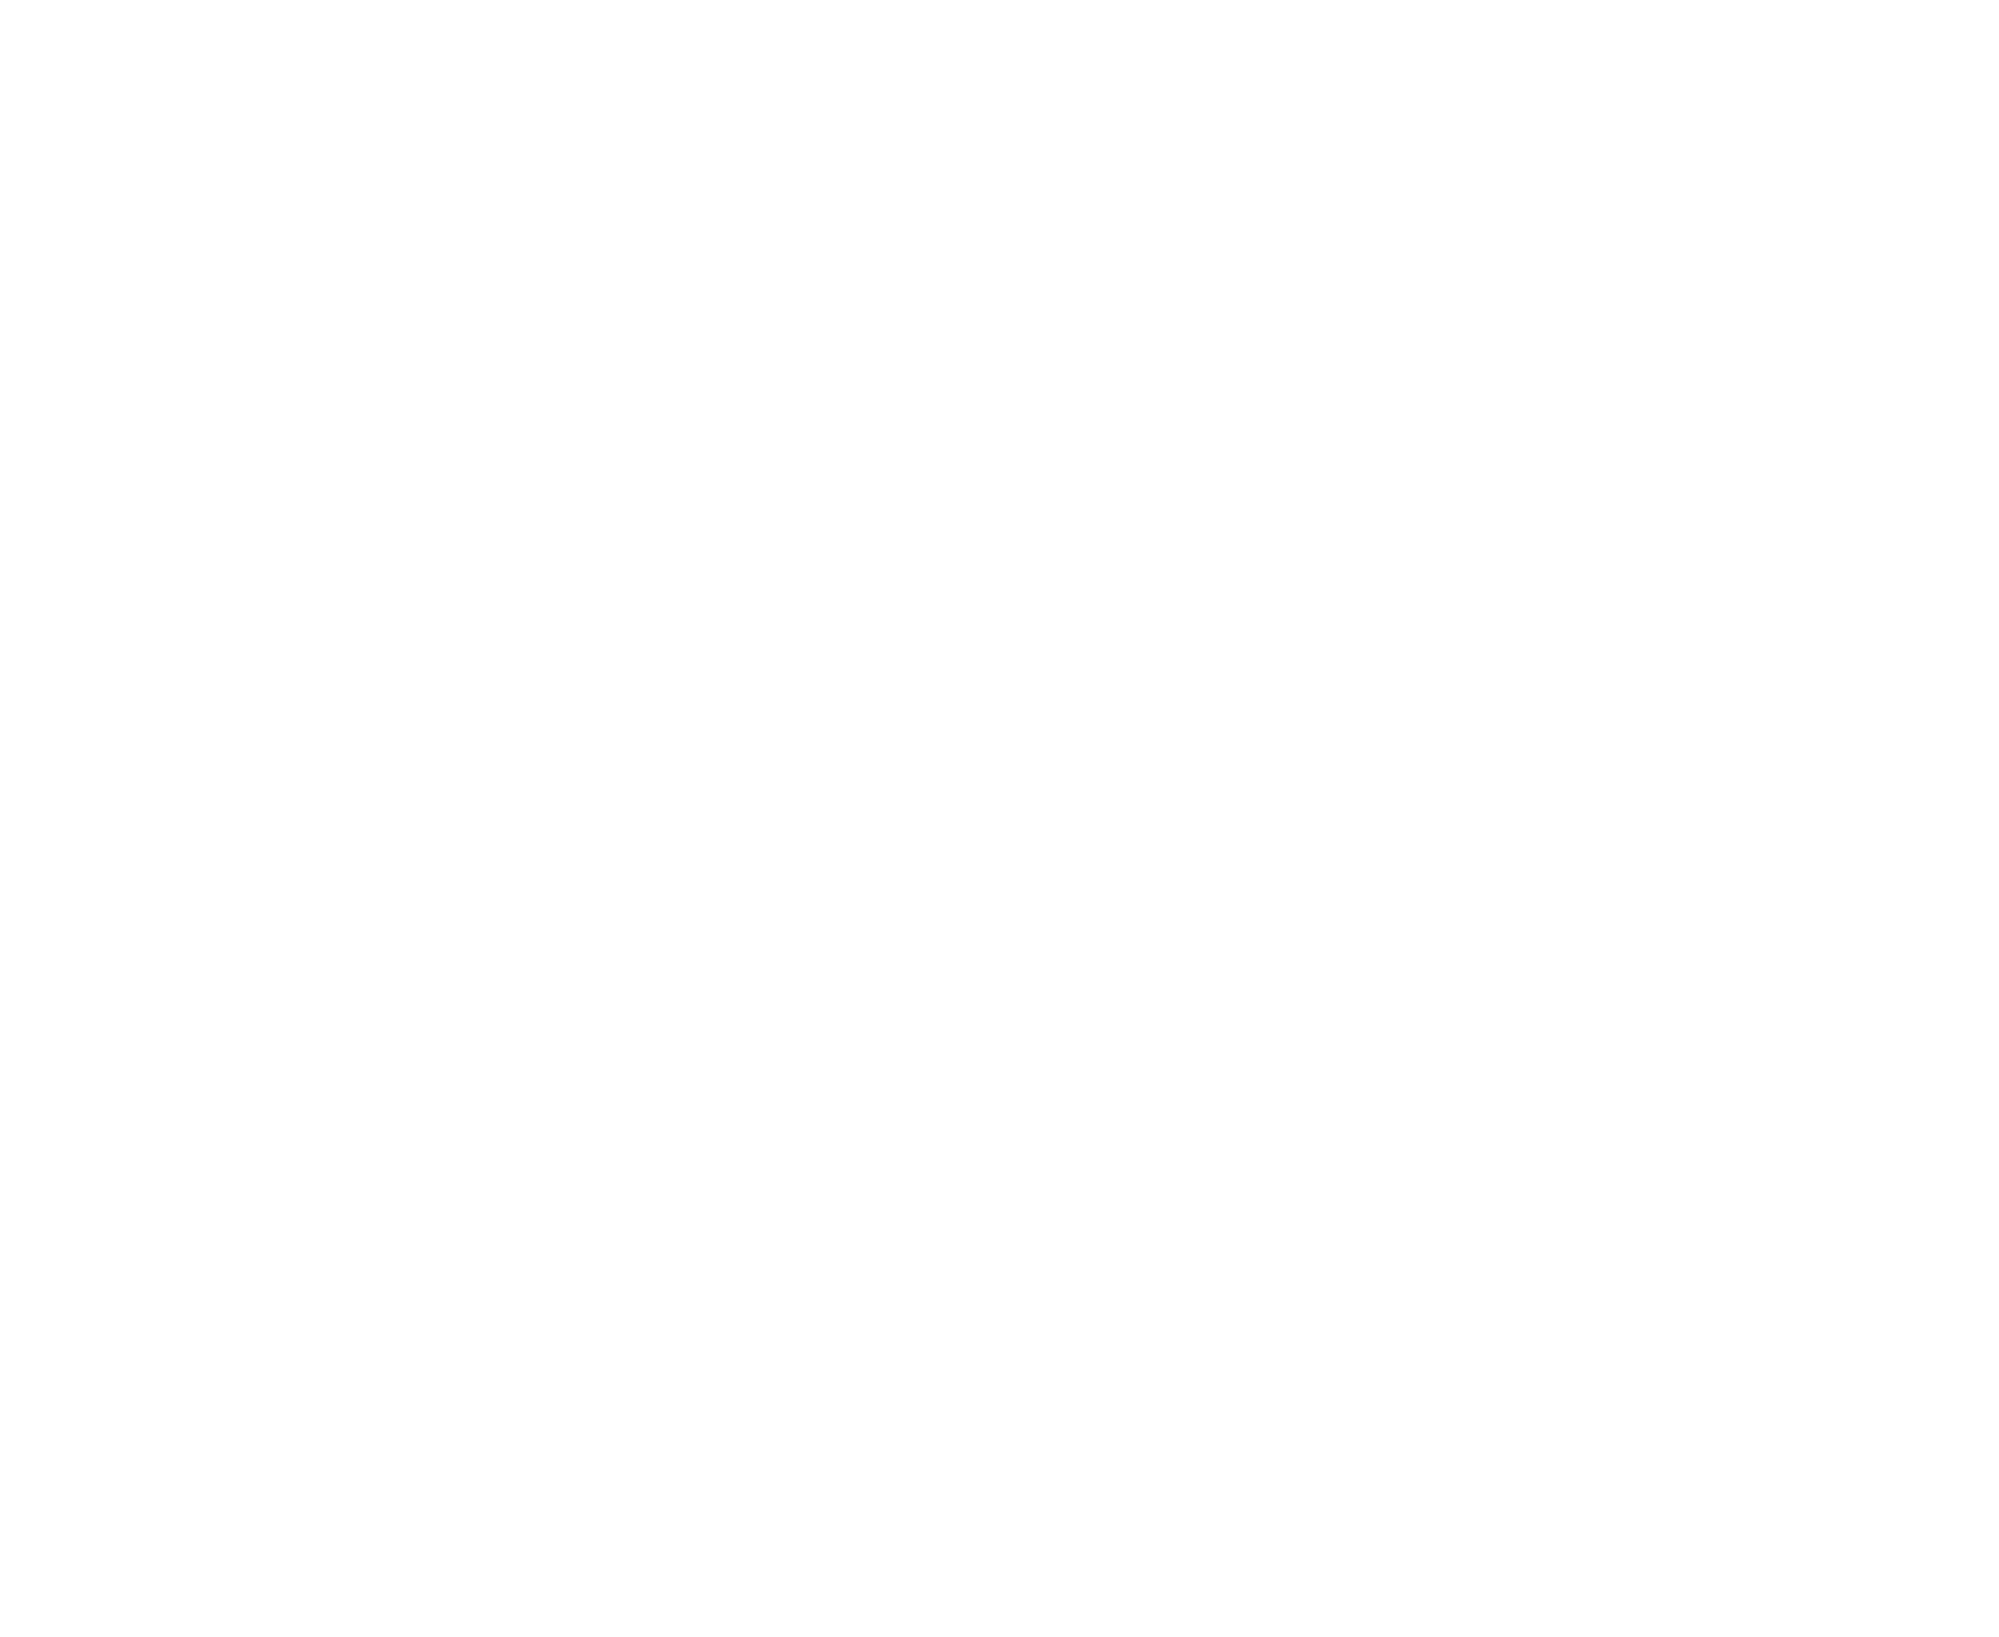 The N'West Iowa REVIEW